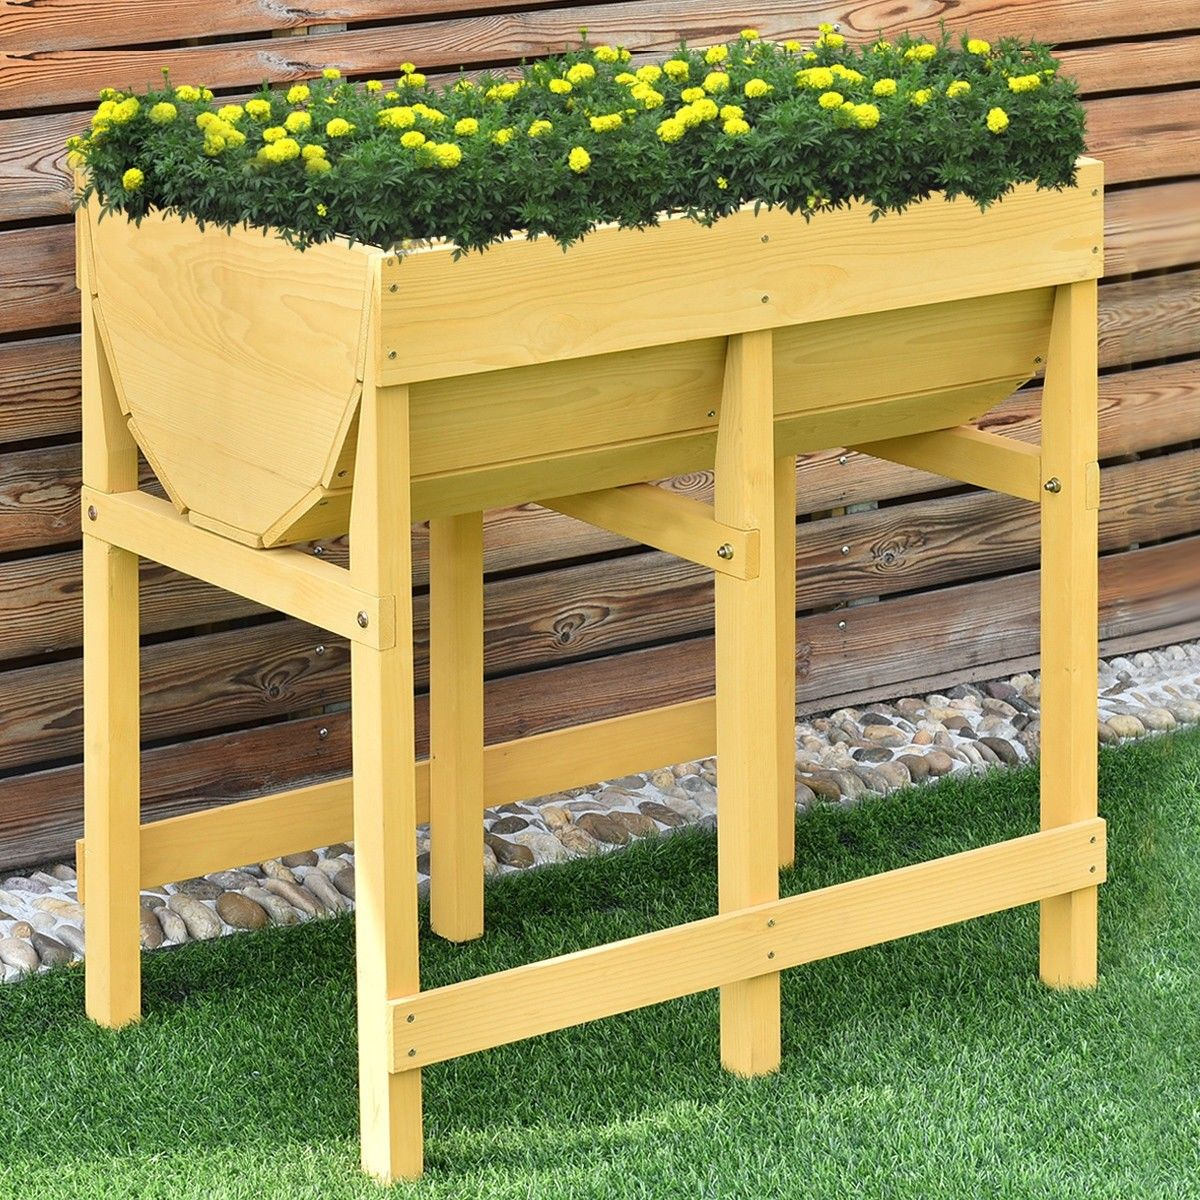 Raised Wooden Planter Vegetable Flower Bed with Liner